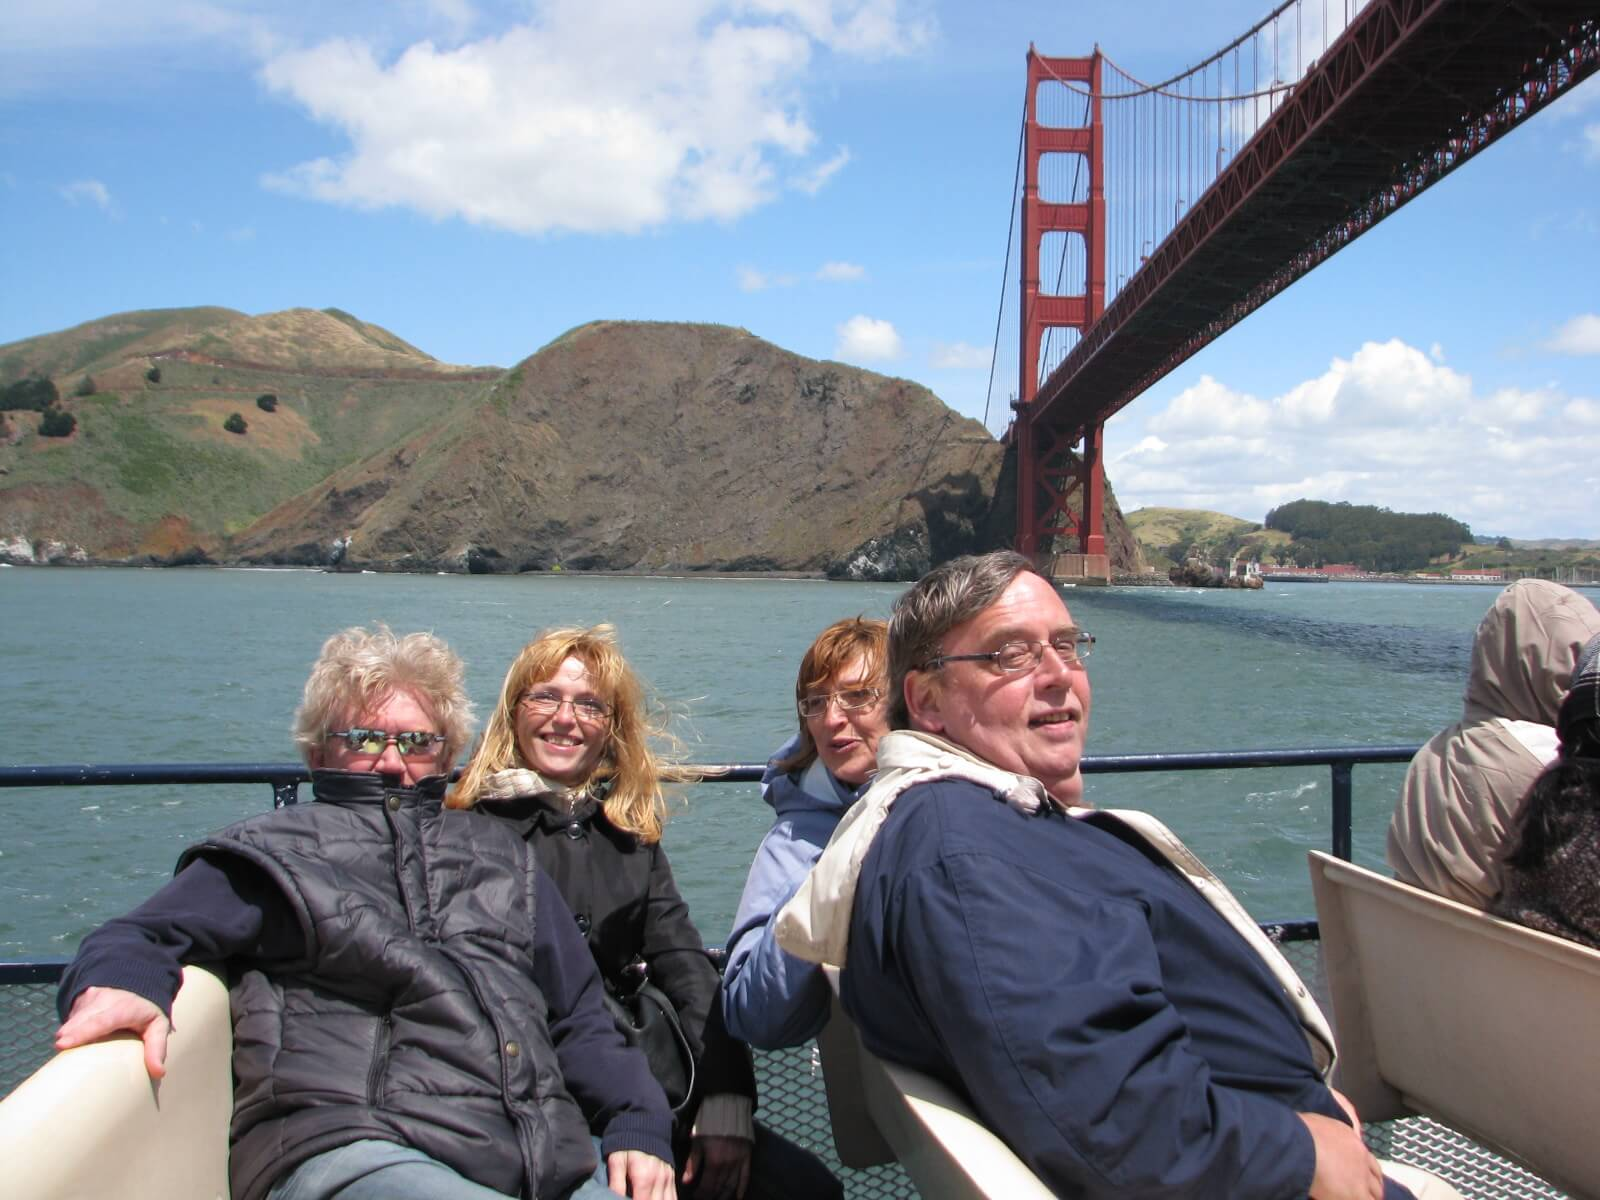 san_francisco_bay_boat_cruises_around_the_bay_under_the_golden_gate_bridge